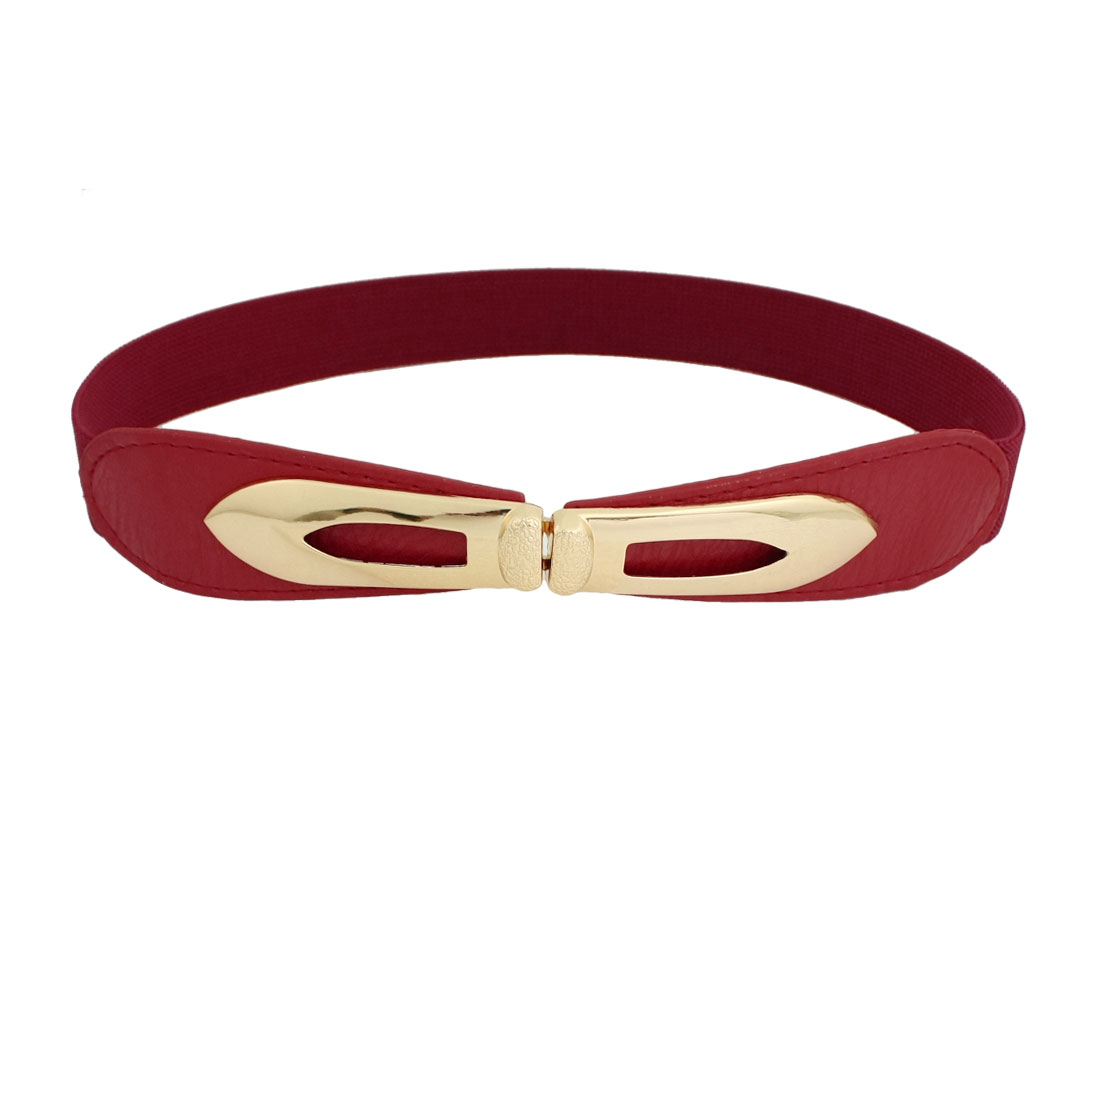 Red 2.5cm Wide Interlocking Buckle Elastic Cinch Belts for Woman